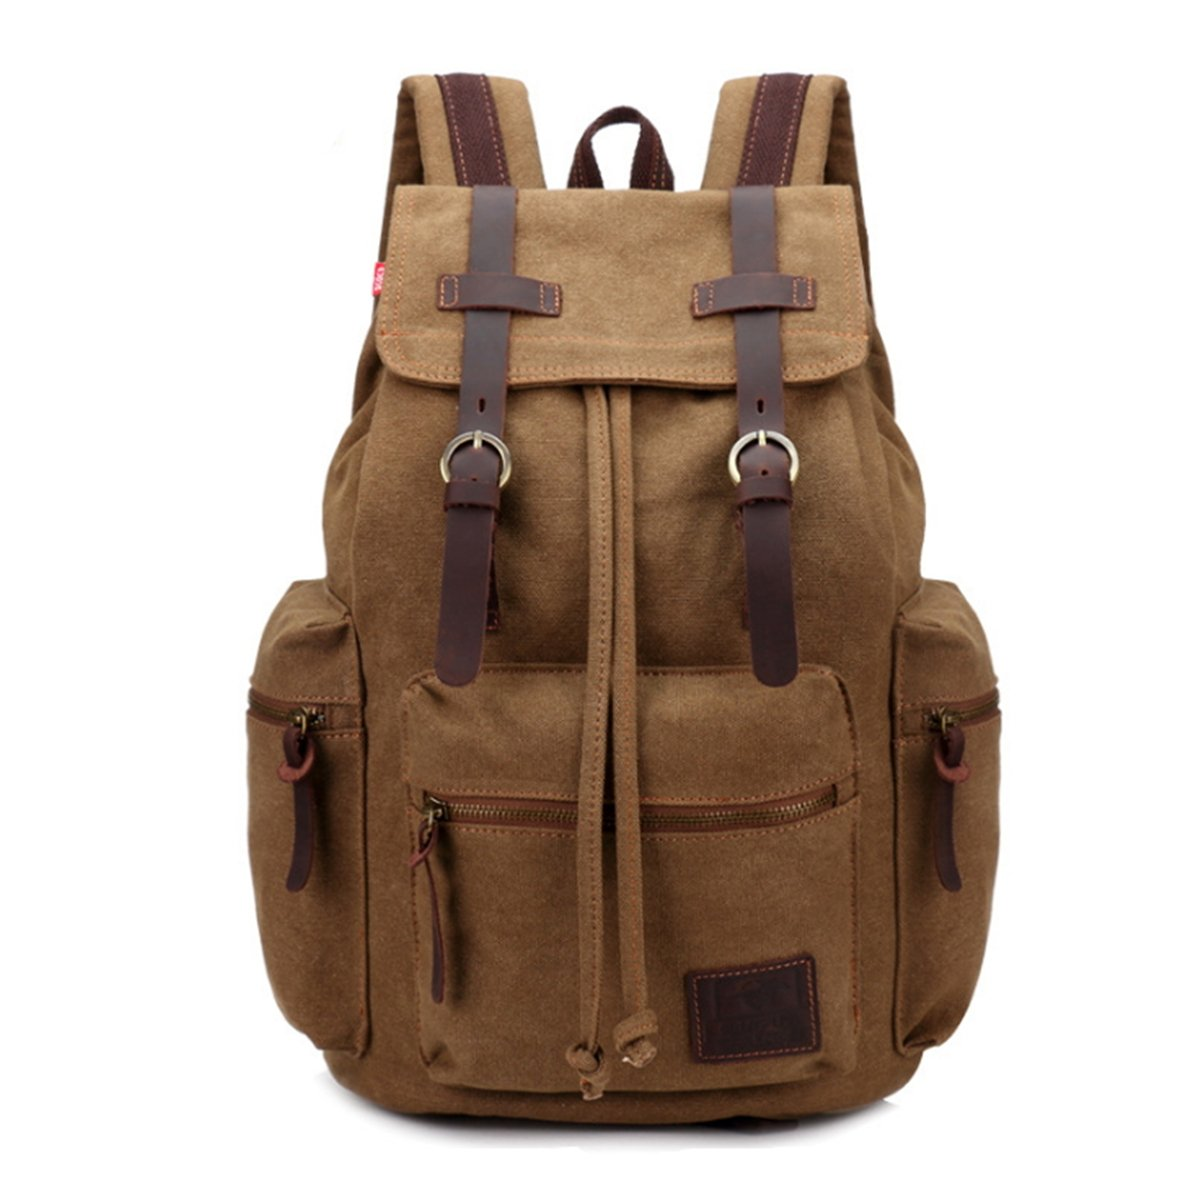 JSBKY Fashion Canvas Vintage Backpack Men Rucksack Leather Casual Bookbag (coffee)